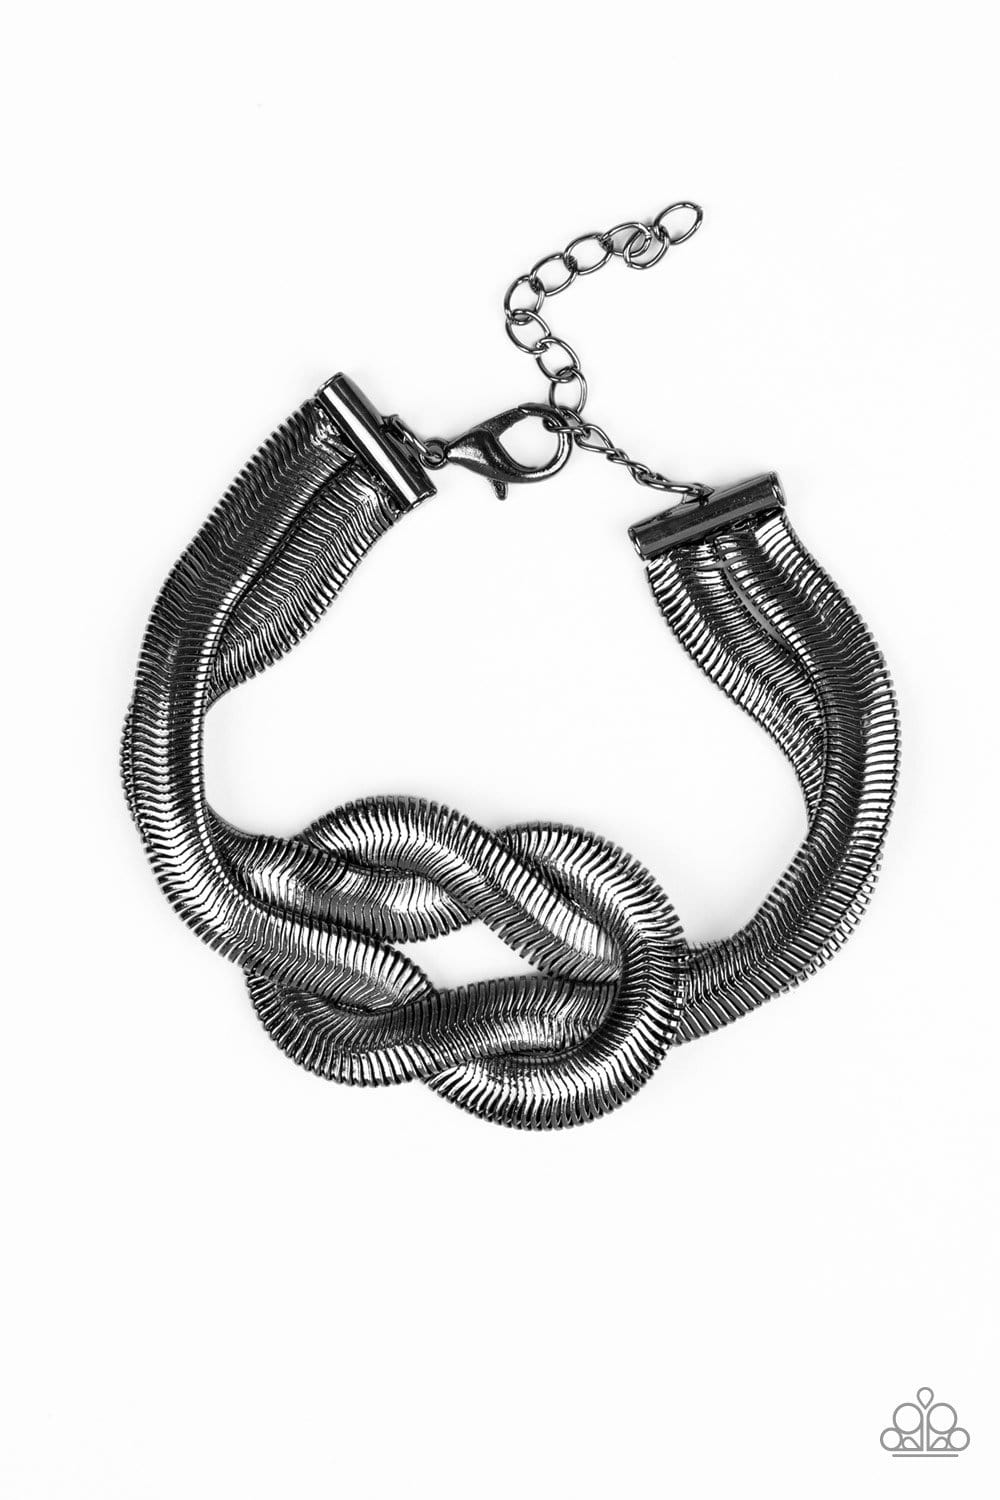 Paparazzi: To The Max - Black Herringbone Chain Knot Bracelet - Jewels N' Thingz Boutique